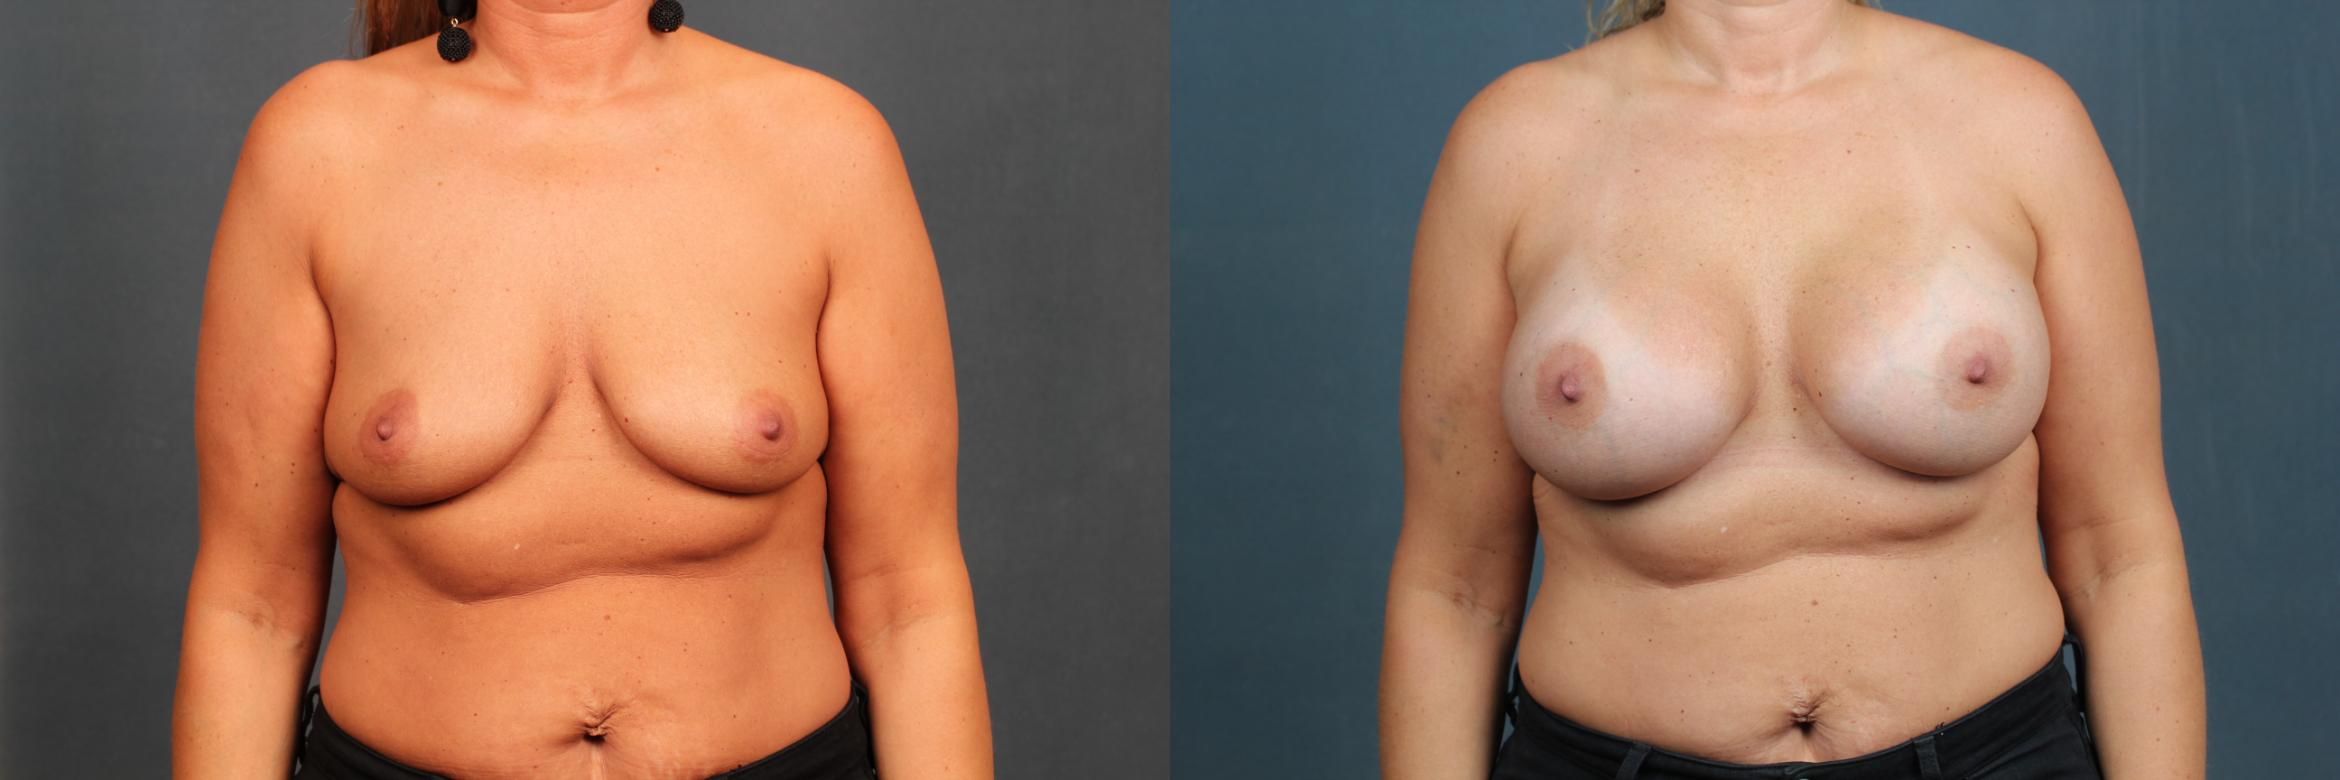 Enlargement - Silicone Case 591 Before & After View #1 | Louisville, KY | CaloAesthetics® Plastic Surgery Center